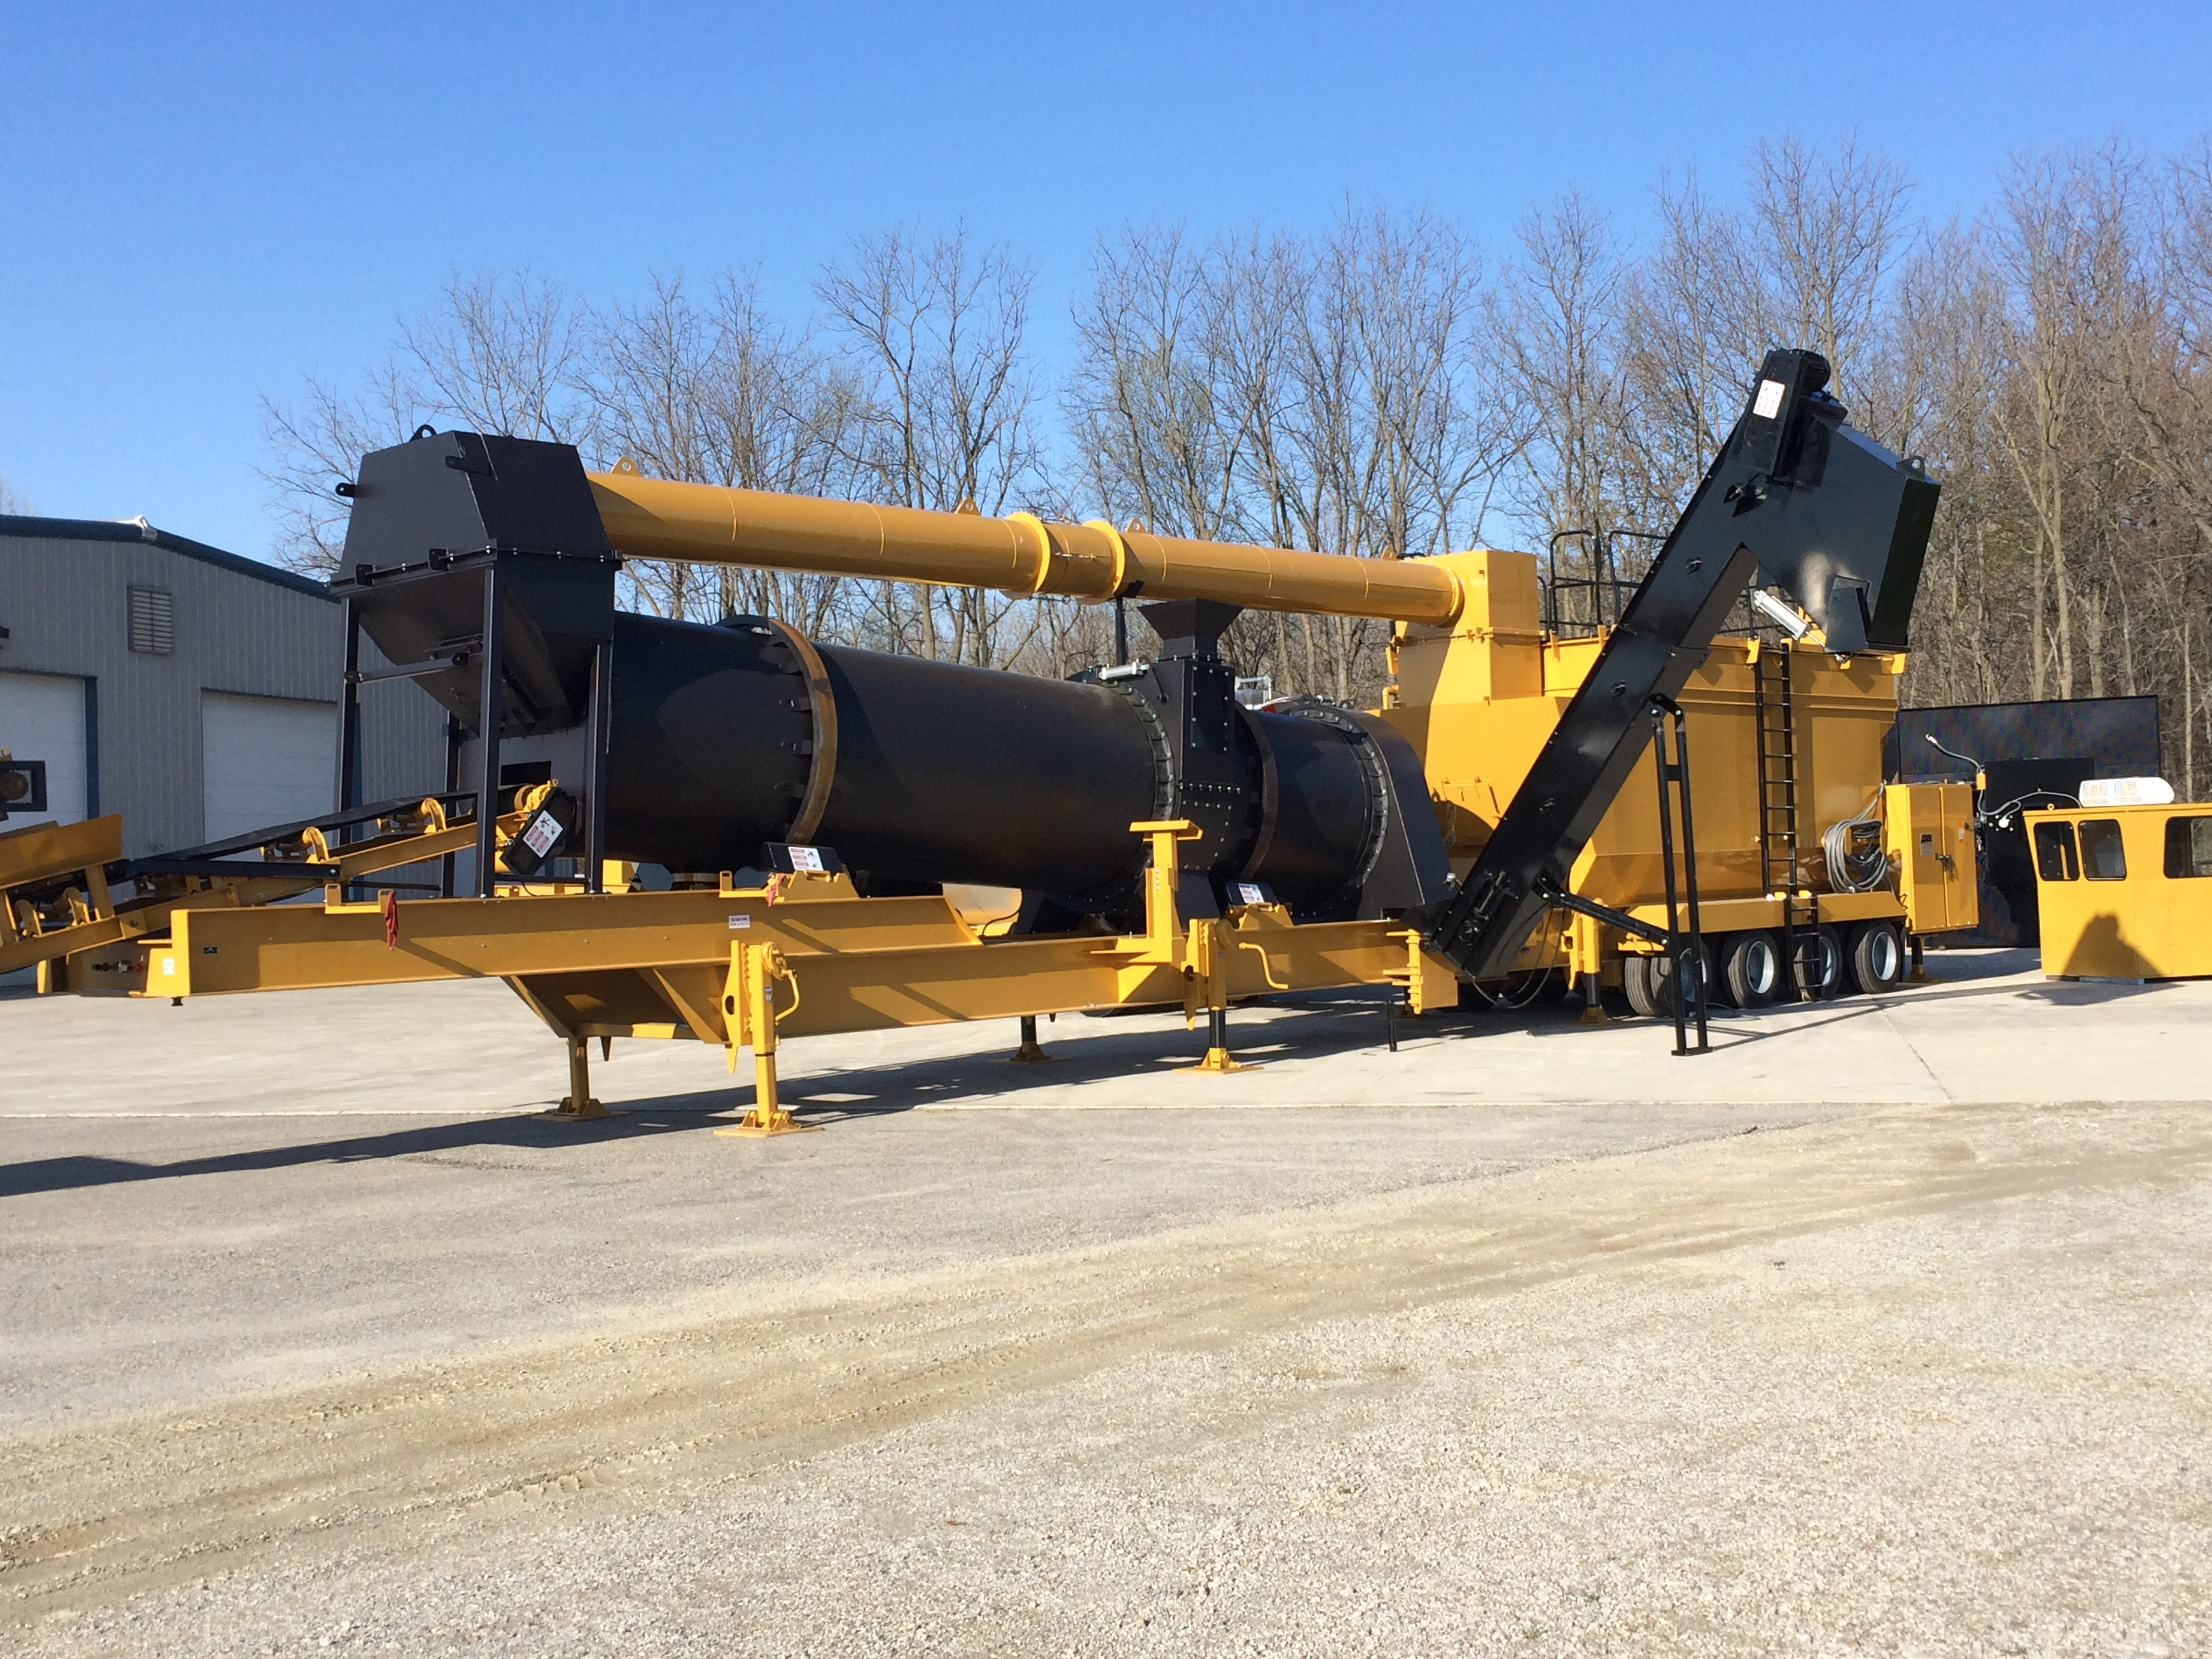 EX120 Asphalt Plant Offers Counterflow Technology, Compact Size and Easy Portability